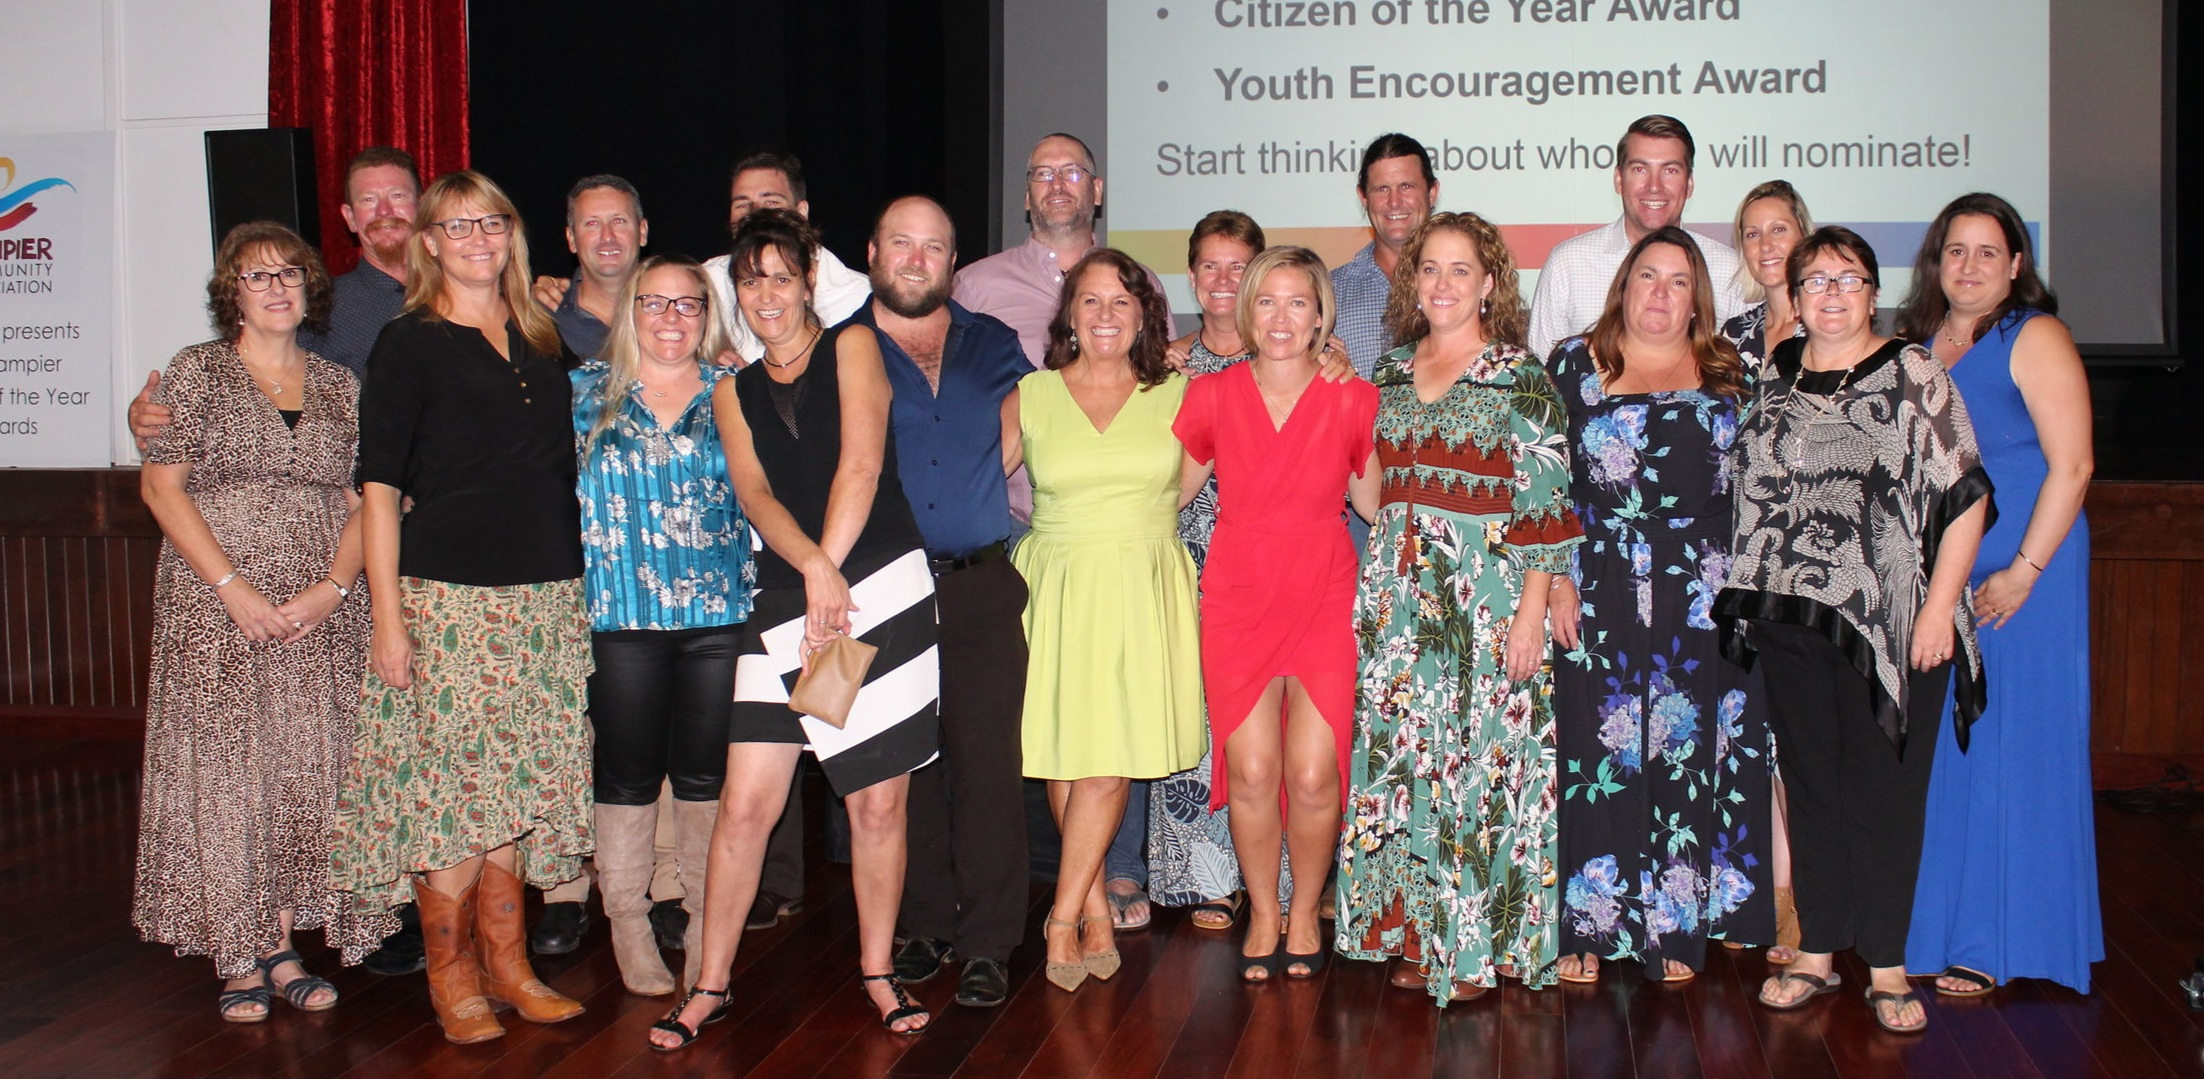 2018 Ernie Willams Citizens of the Year nominees  Left to Right : Sharyn Creighton, Red Abercromby, Karissa Ammerer, Graham Ferguson, Krstin McLuckie, Wendy Rogers, Adam Bell, Grant Theelen, Conor O'Brien, Tracey Stewart, Tracey Bell, Sarah Board, Rocket Nicholl, Jo Leo, Scott Bourne, Jas Ashcroft, Stacey Hambley, Gill Furlong (DCA President) and Nichole Smith.  Sadly missing Roz Powell, Jodie Wilson, Brendon Archer and Apryl O'Brien